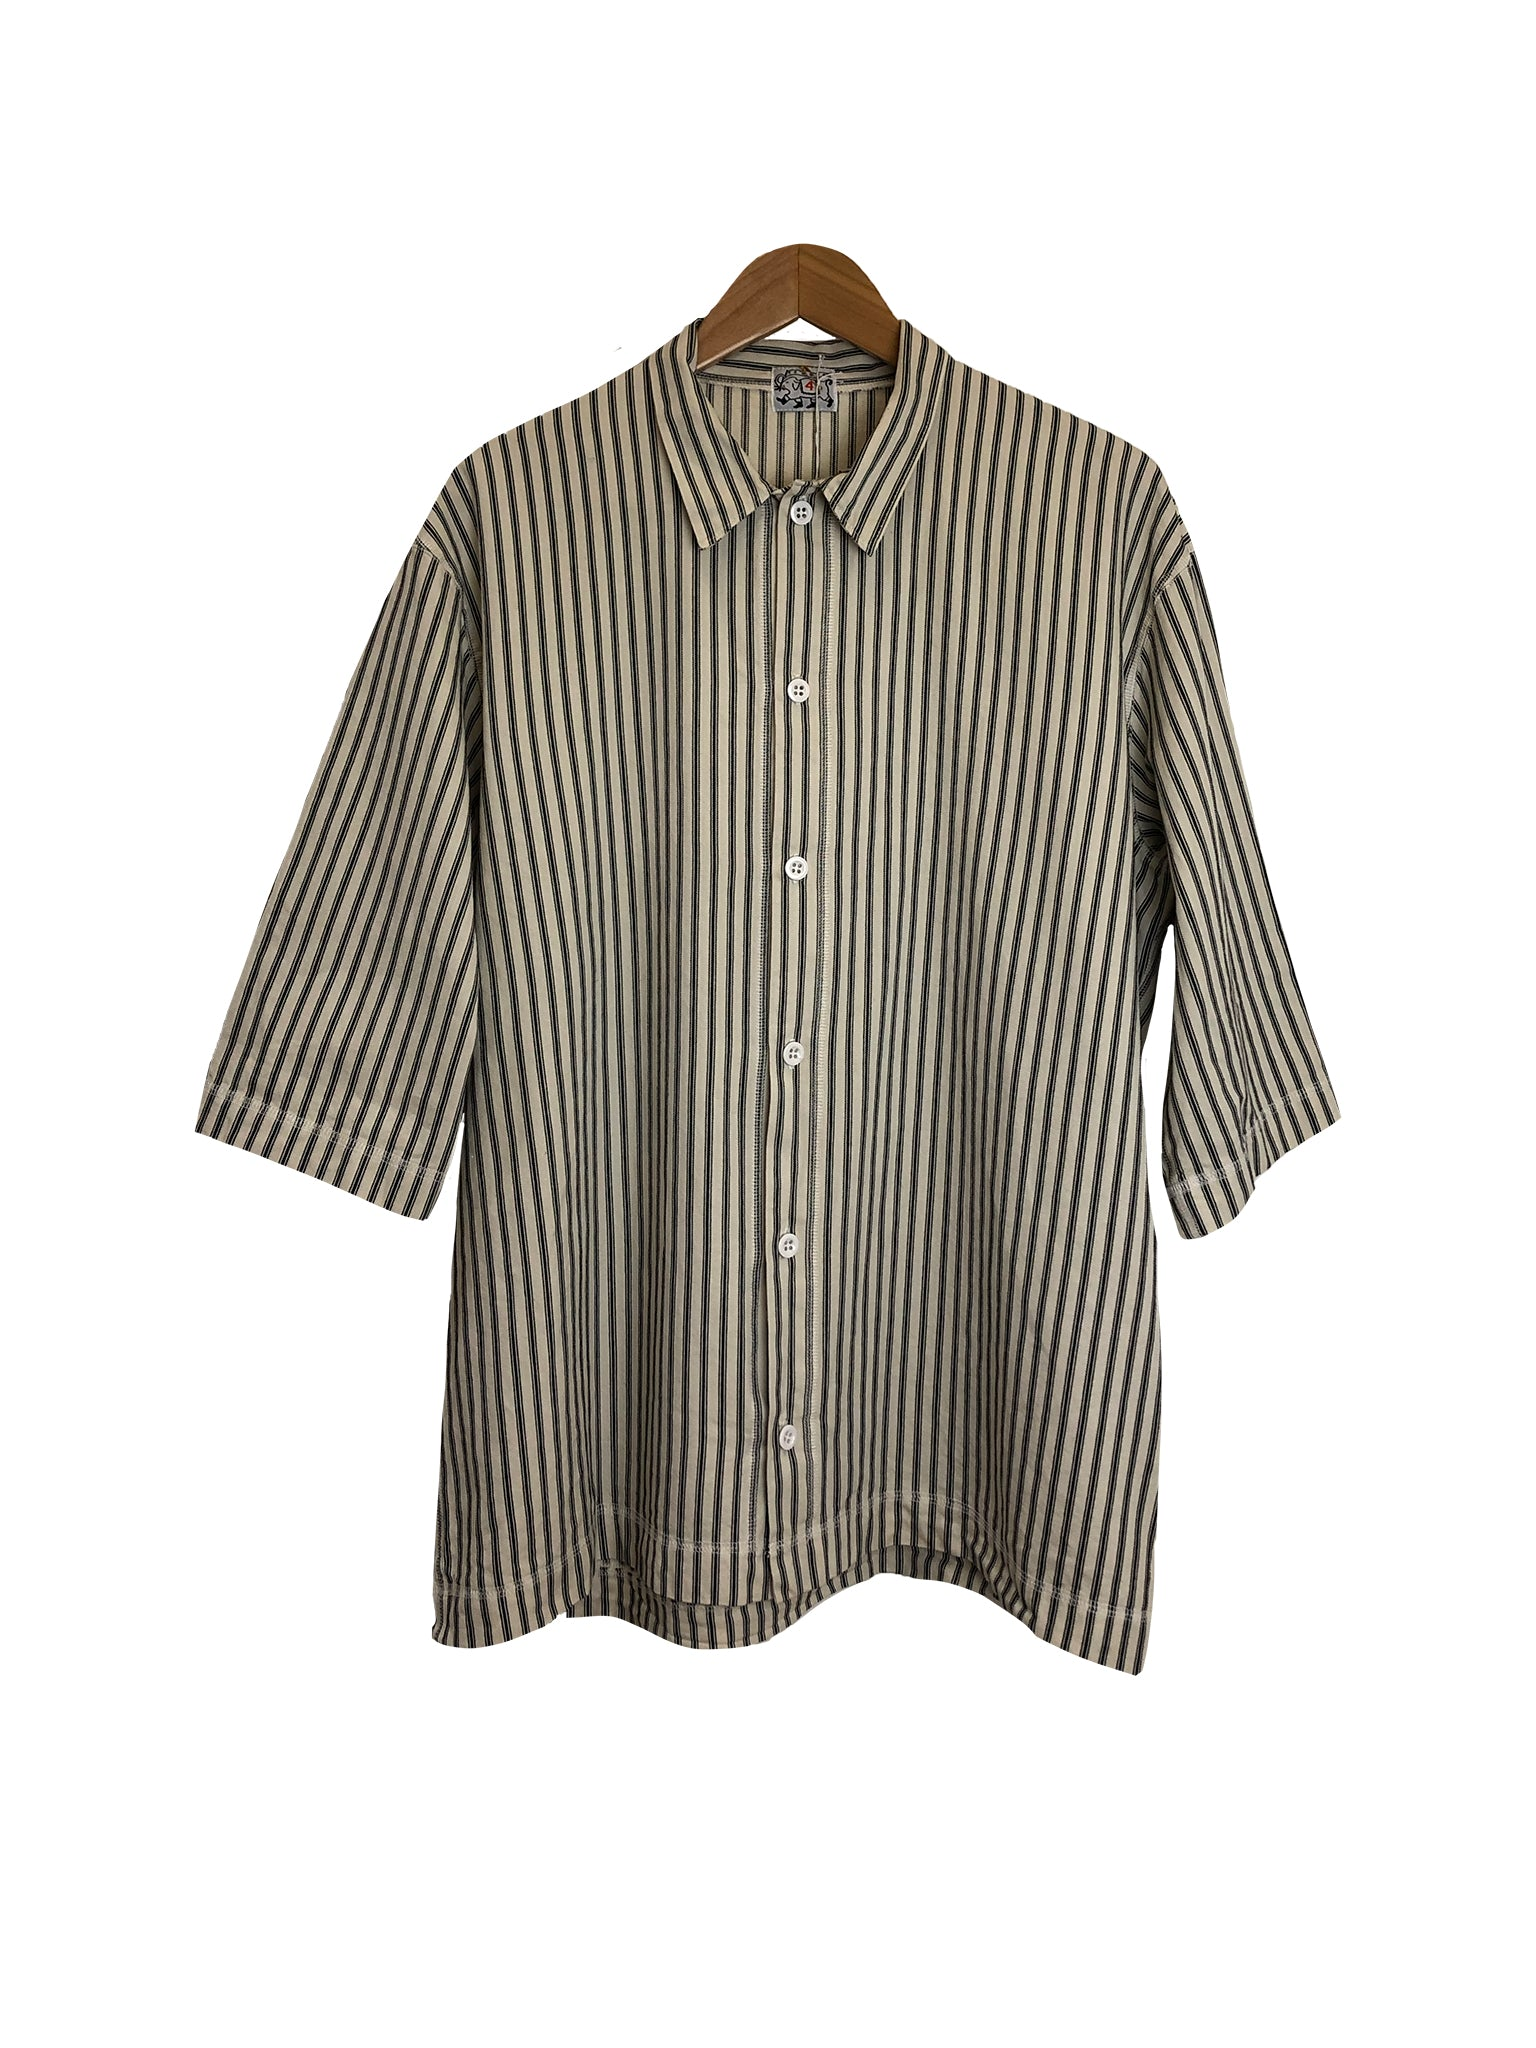 Short Sleeve Weaver's Stock Mattress Stripe Shirt - Black